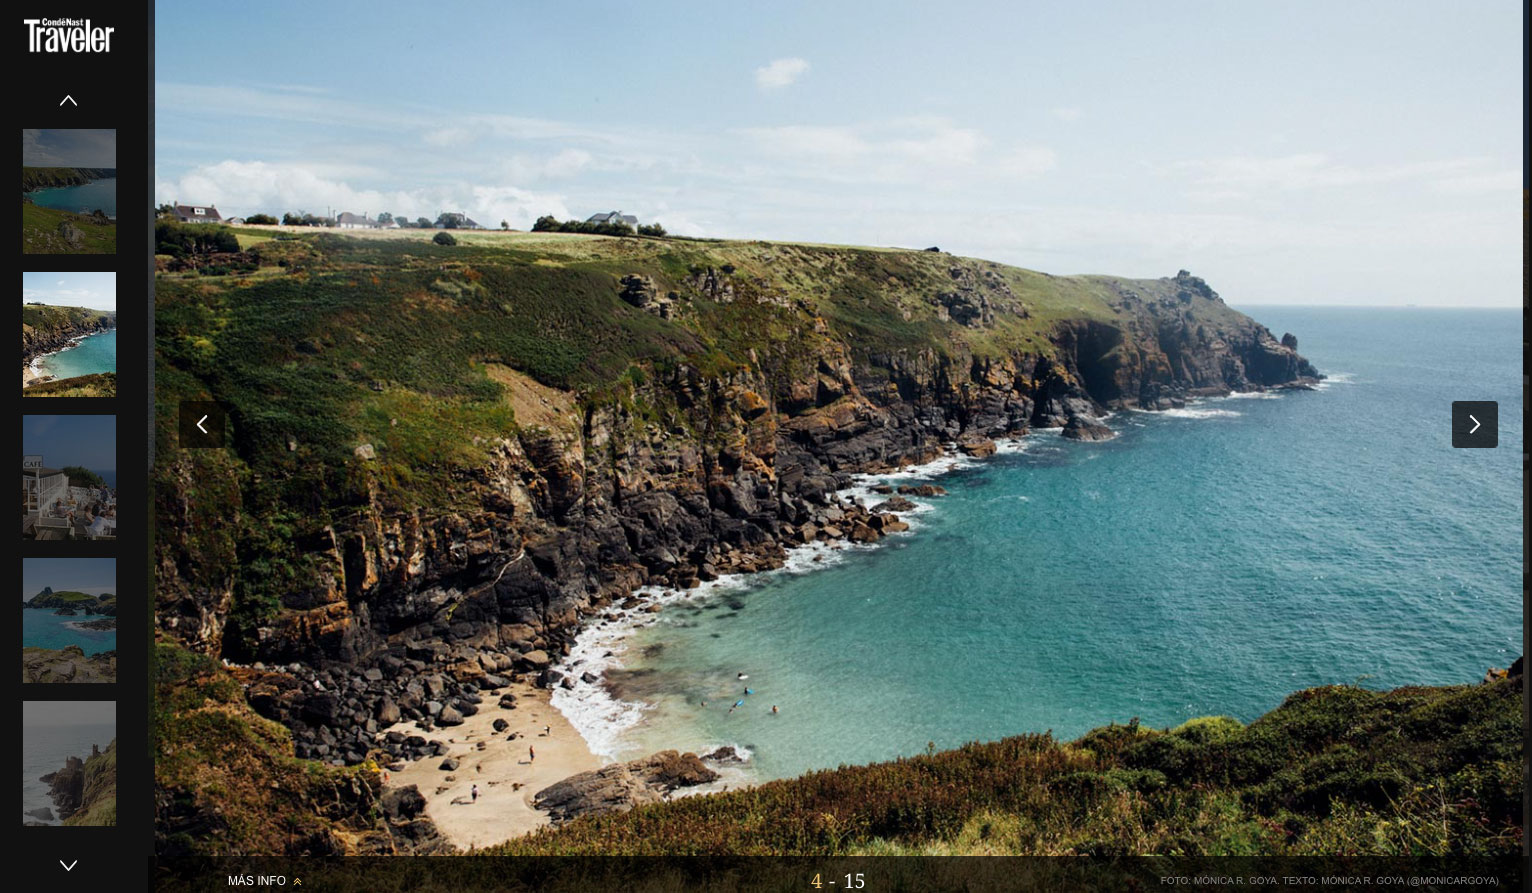 cornwall-road-trip-cntraveler-spain.jpg